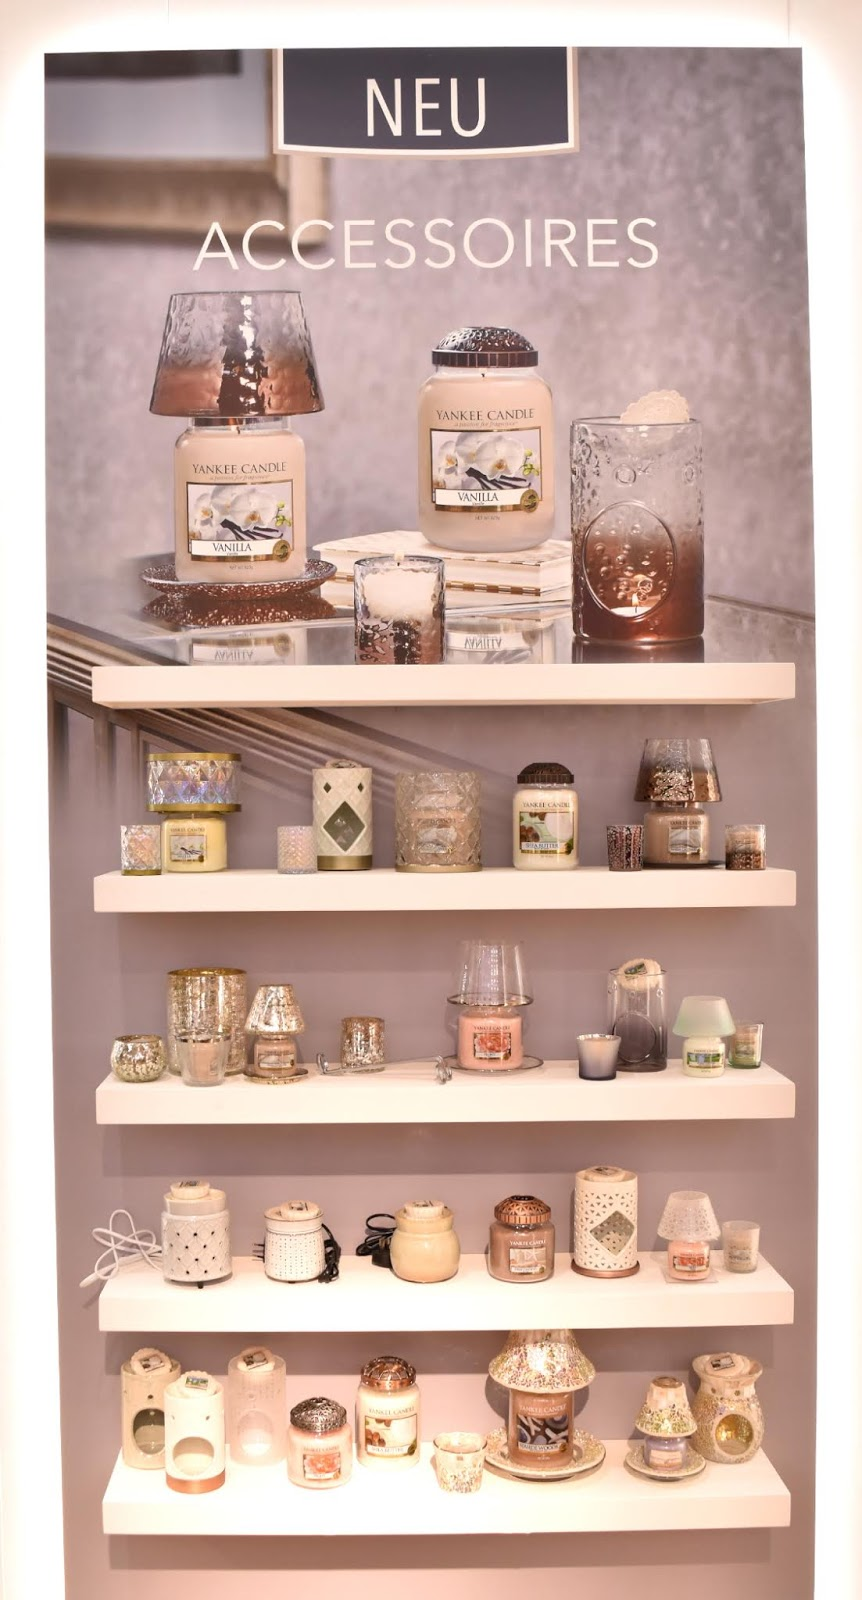 Yankee Candle - Accessoires 2019